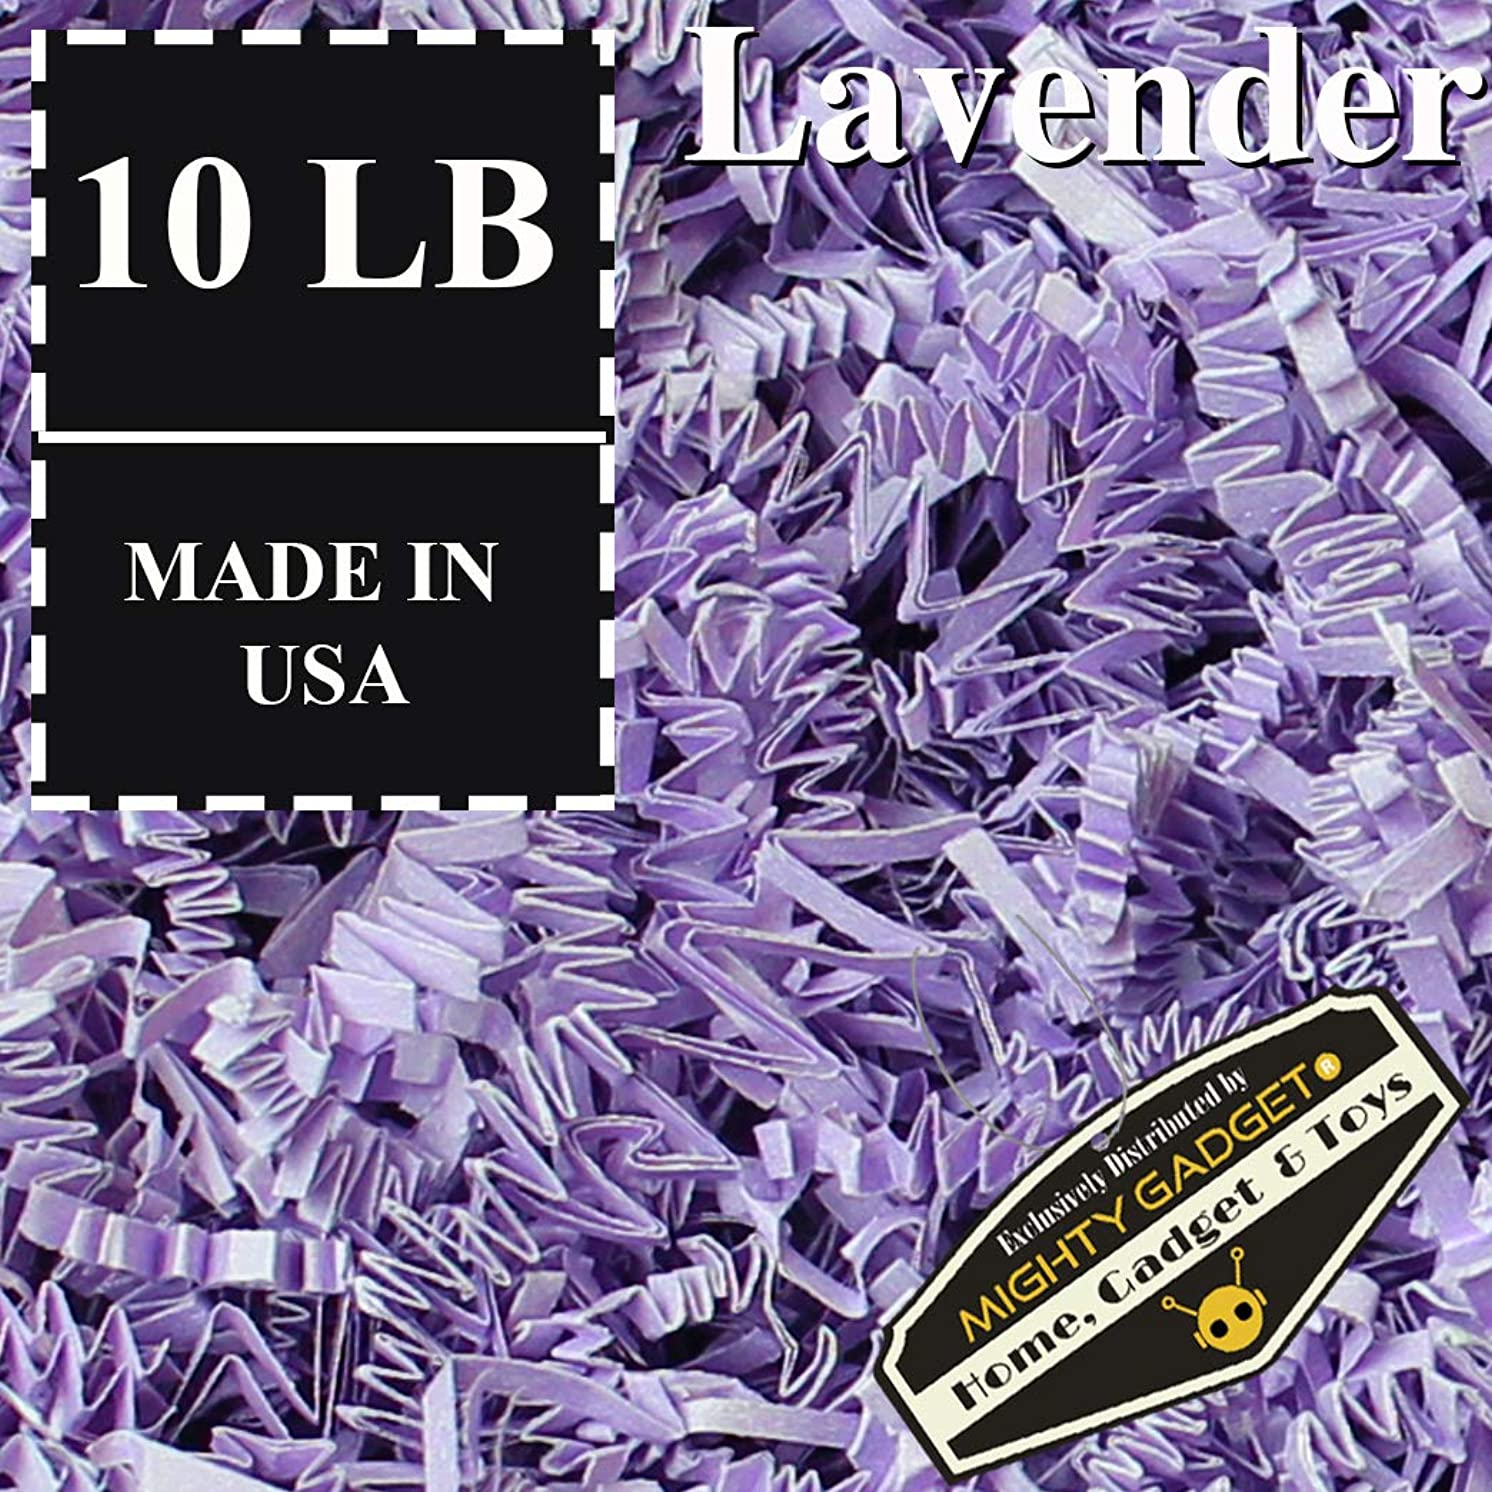 Mighty Gadget Brand 10 LB Value Pack Crinkle Cut Paper Shred Filler for Packing and Filling Gift Baskets, Gift Boxes Natural Craft Bedding in Lavender (10 LB)